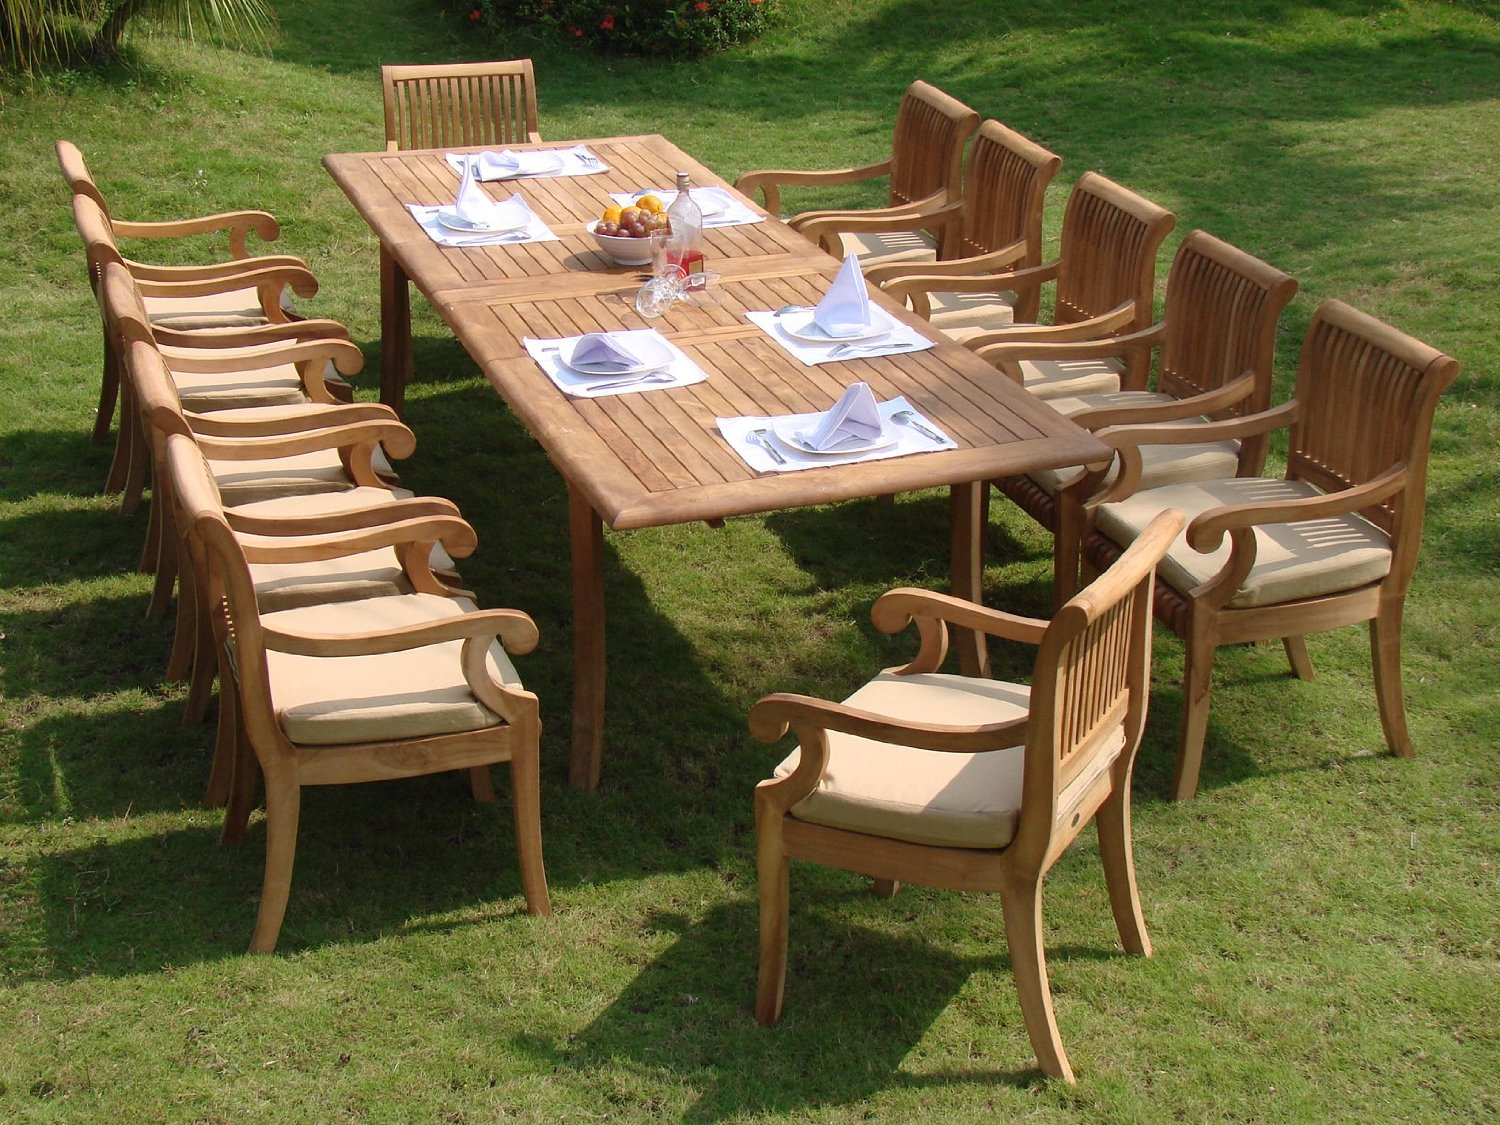 Extraordinary Outdoor Furniture Projects Wood Outdoor Furniture Canada Reviewing Teak Outdoor Sets Wood Teak Outdoor Set Reviews Compare houzz 01 Best Wood For Outdoor Furniture